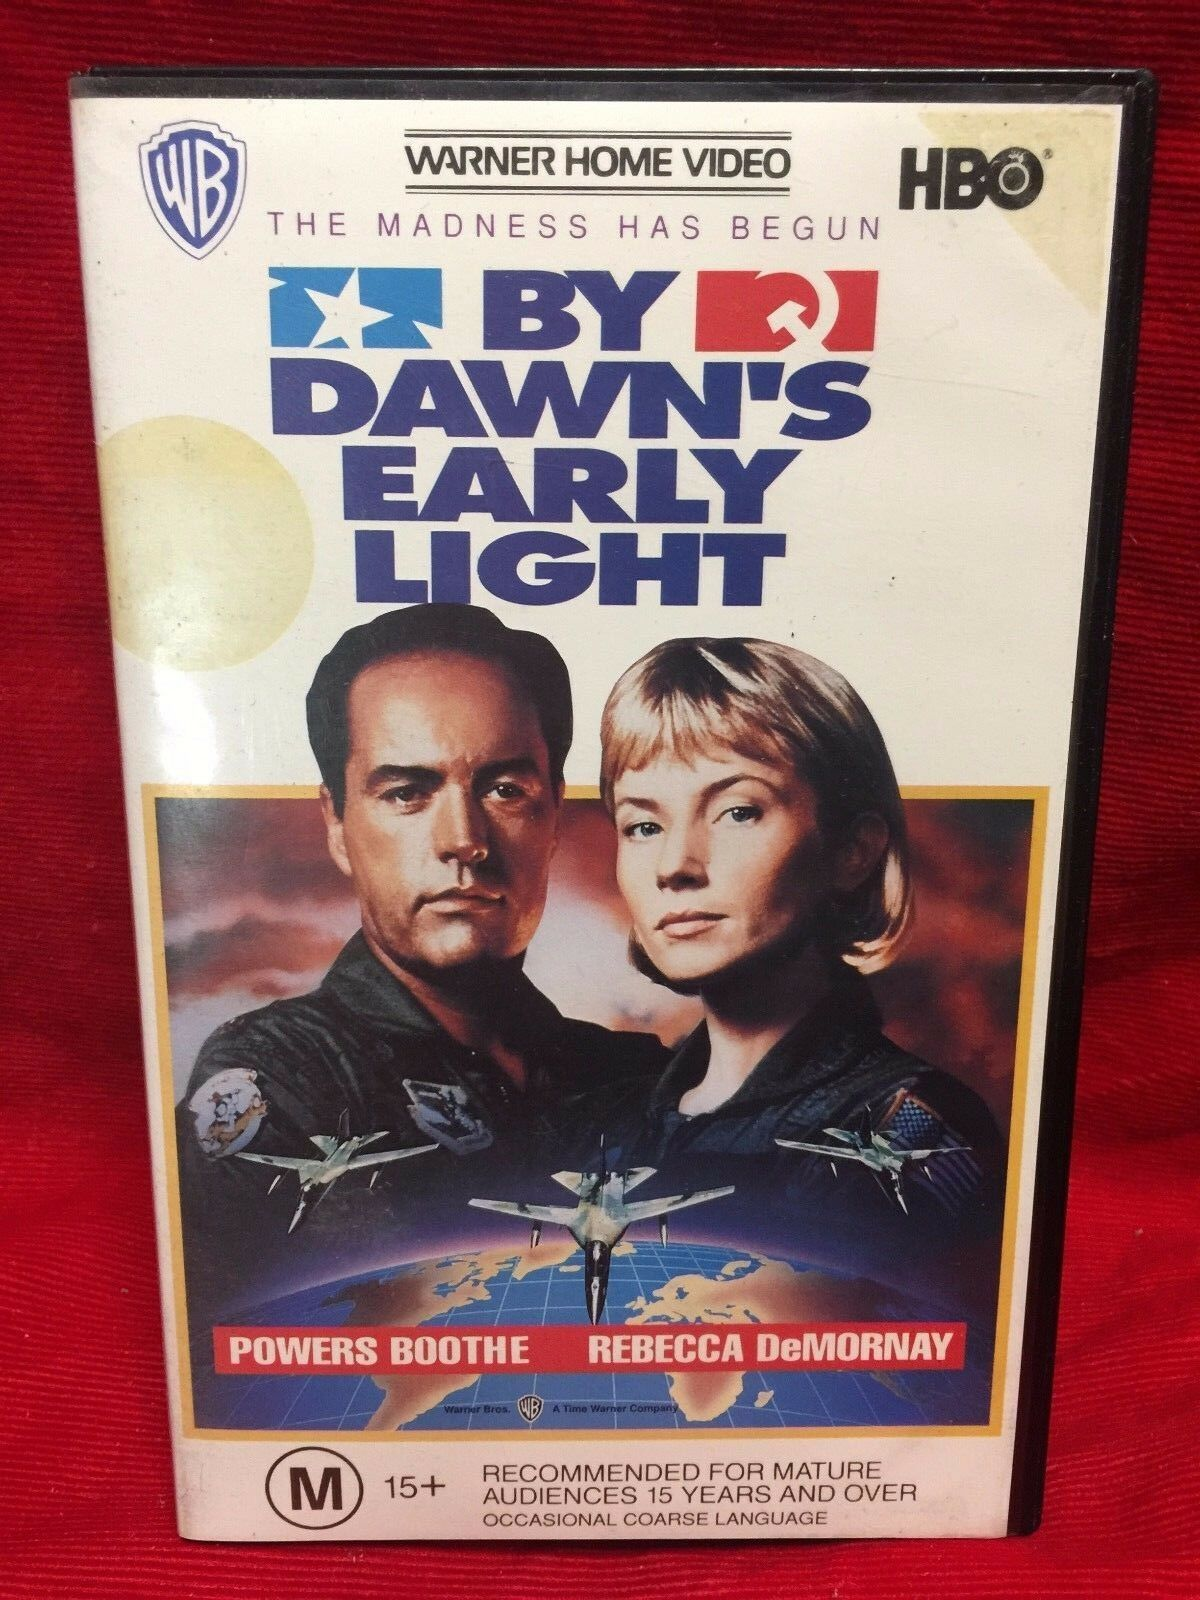 by dawns early light vhs video tape movie warner home